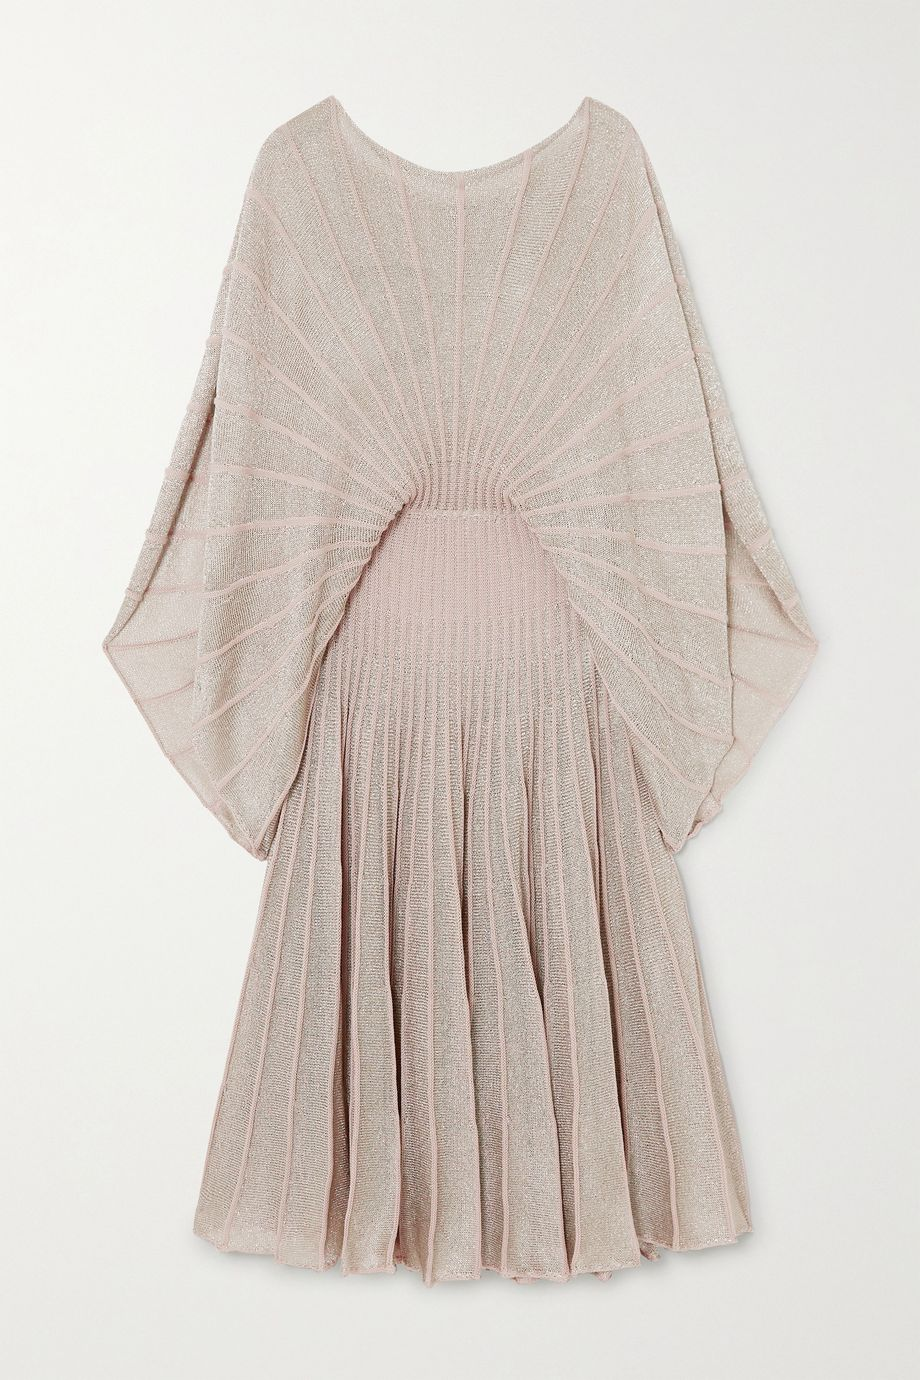 Stella McCartney + NET SUSTAIN metallic knitted midi dress